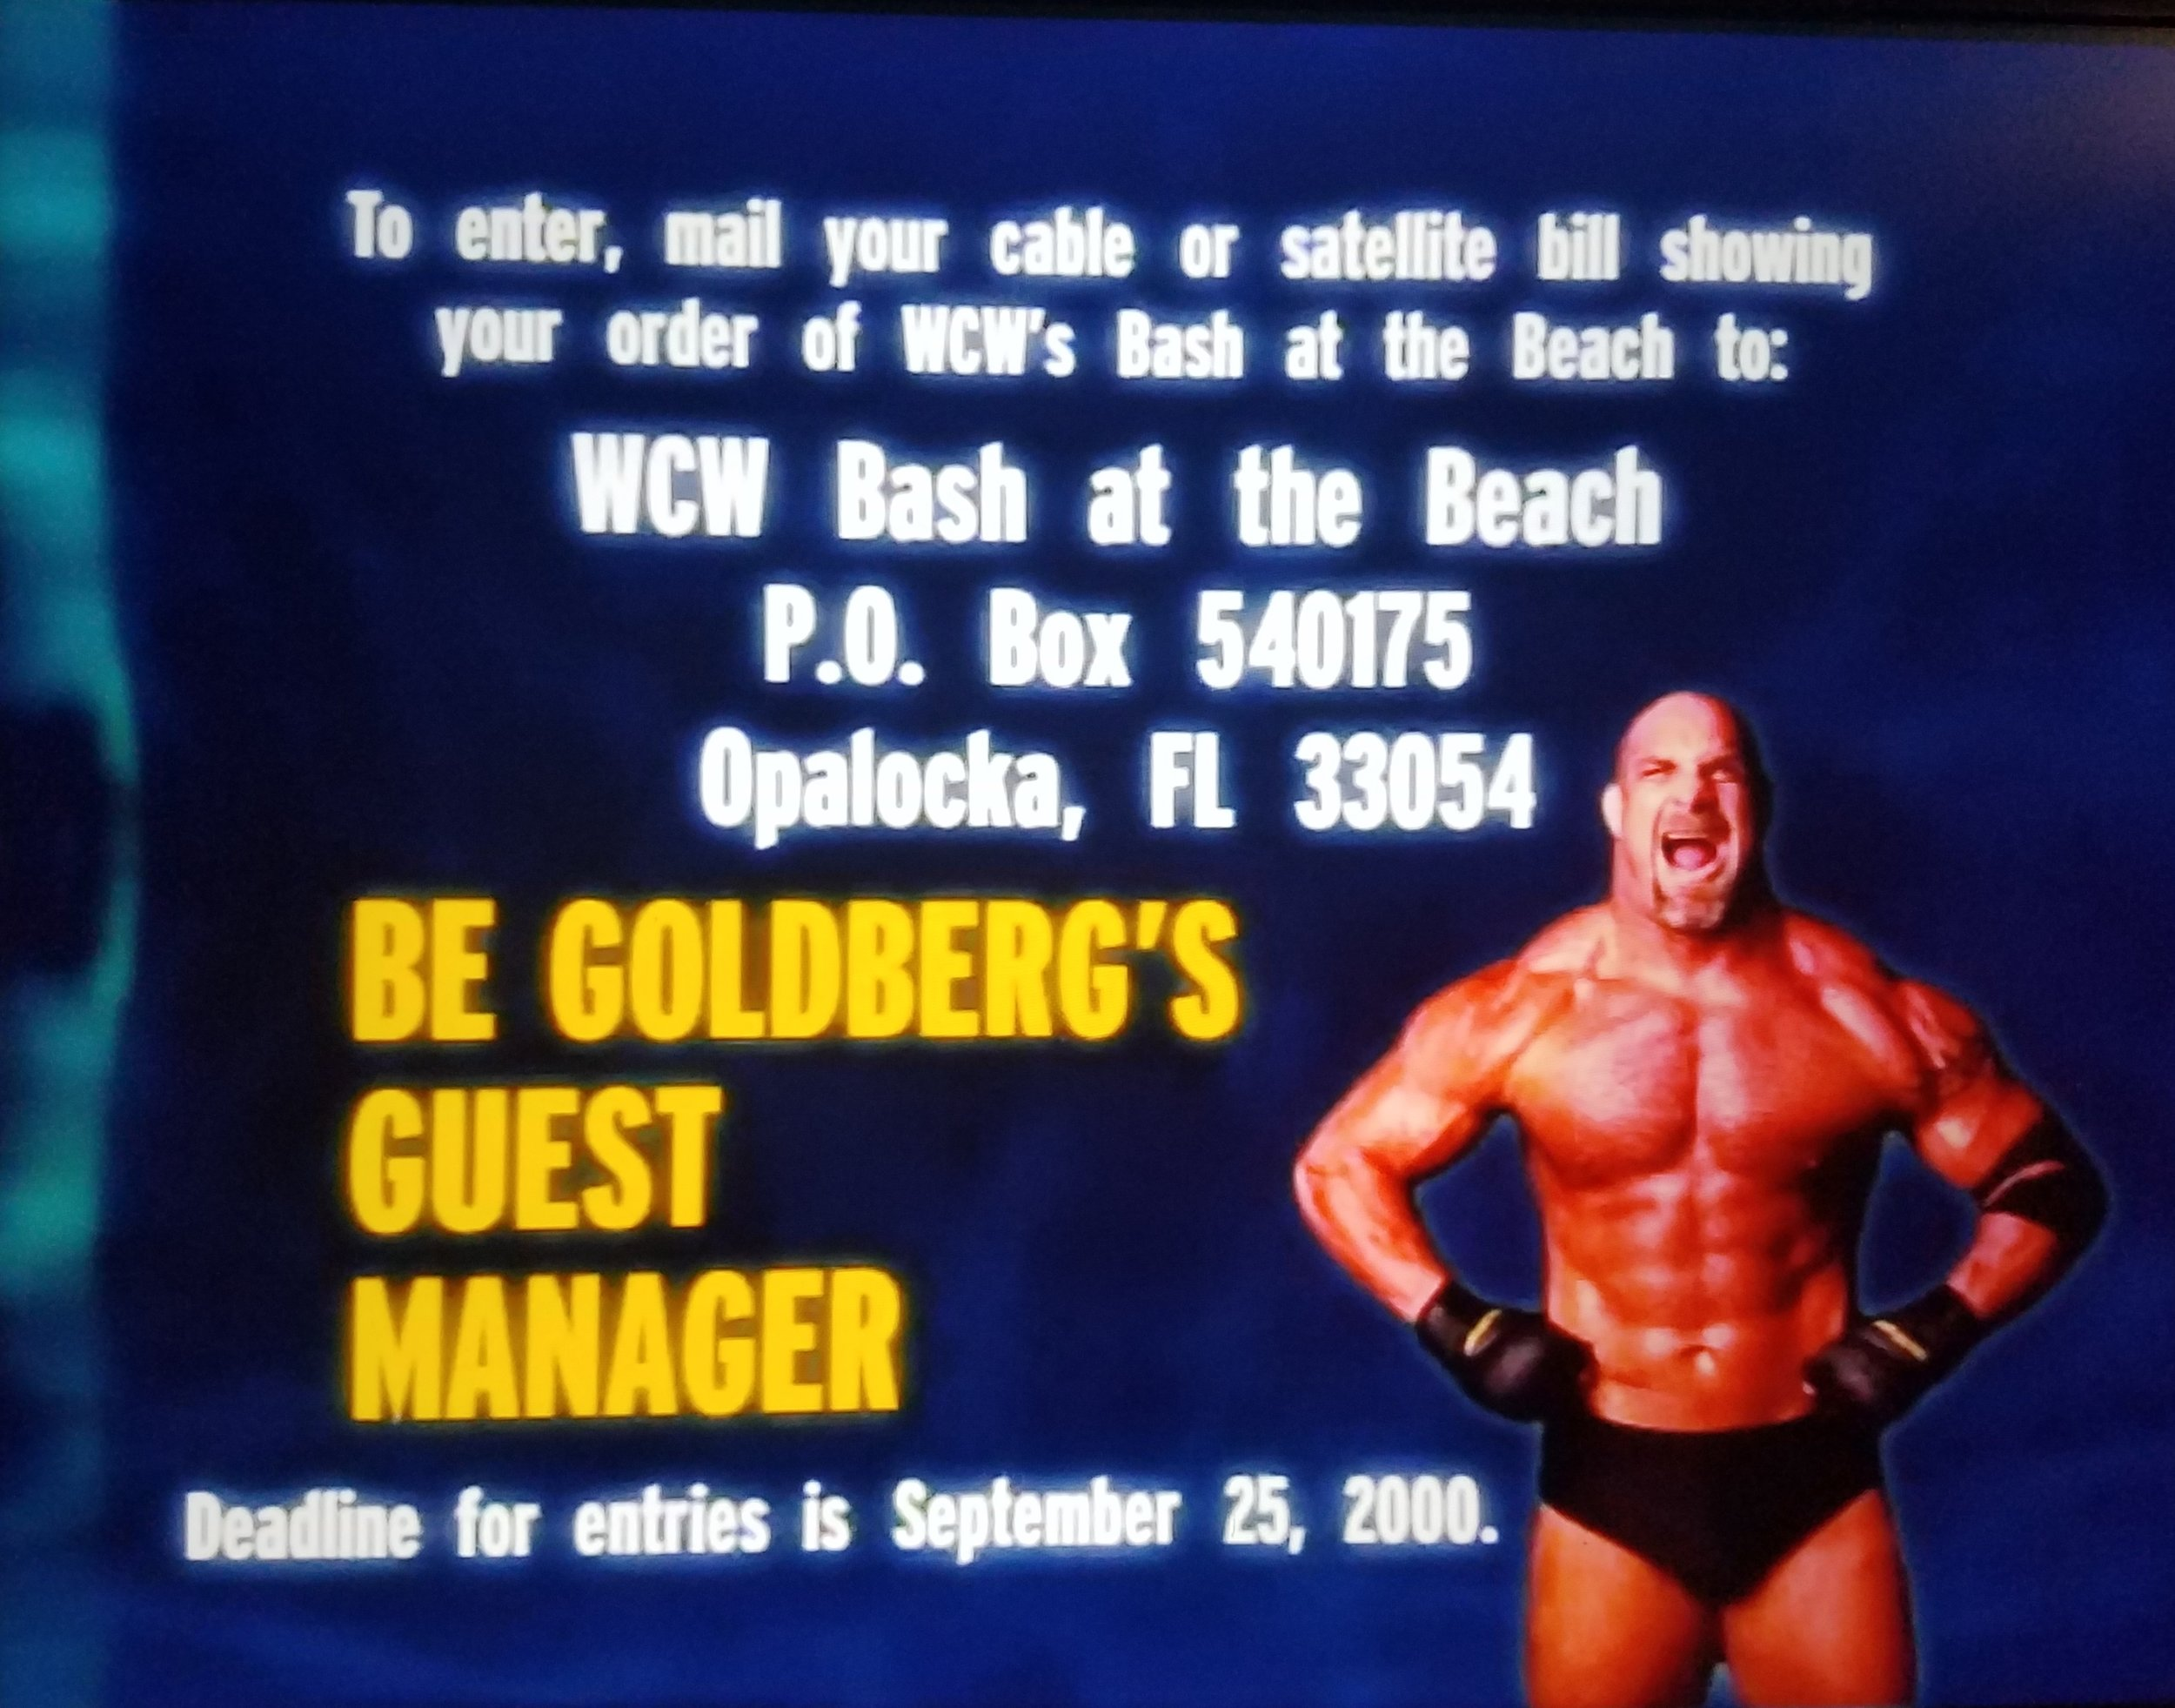 Goldberg Manager Search.jpg